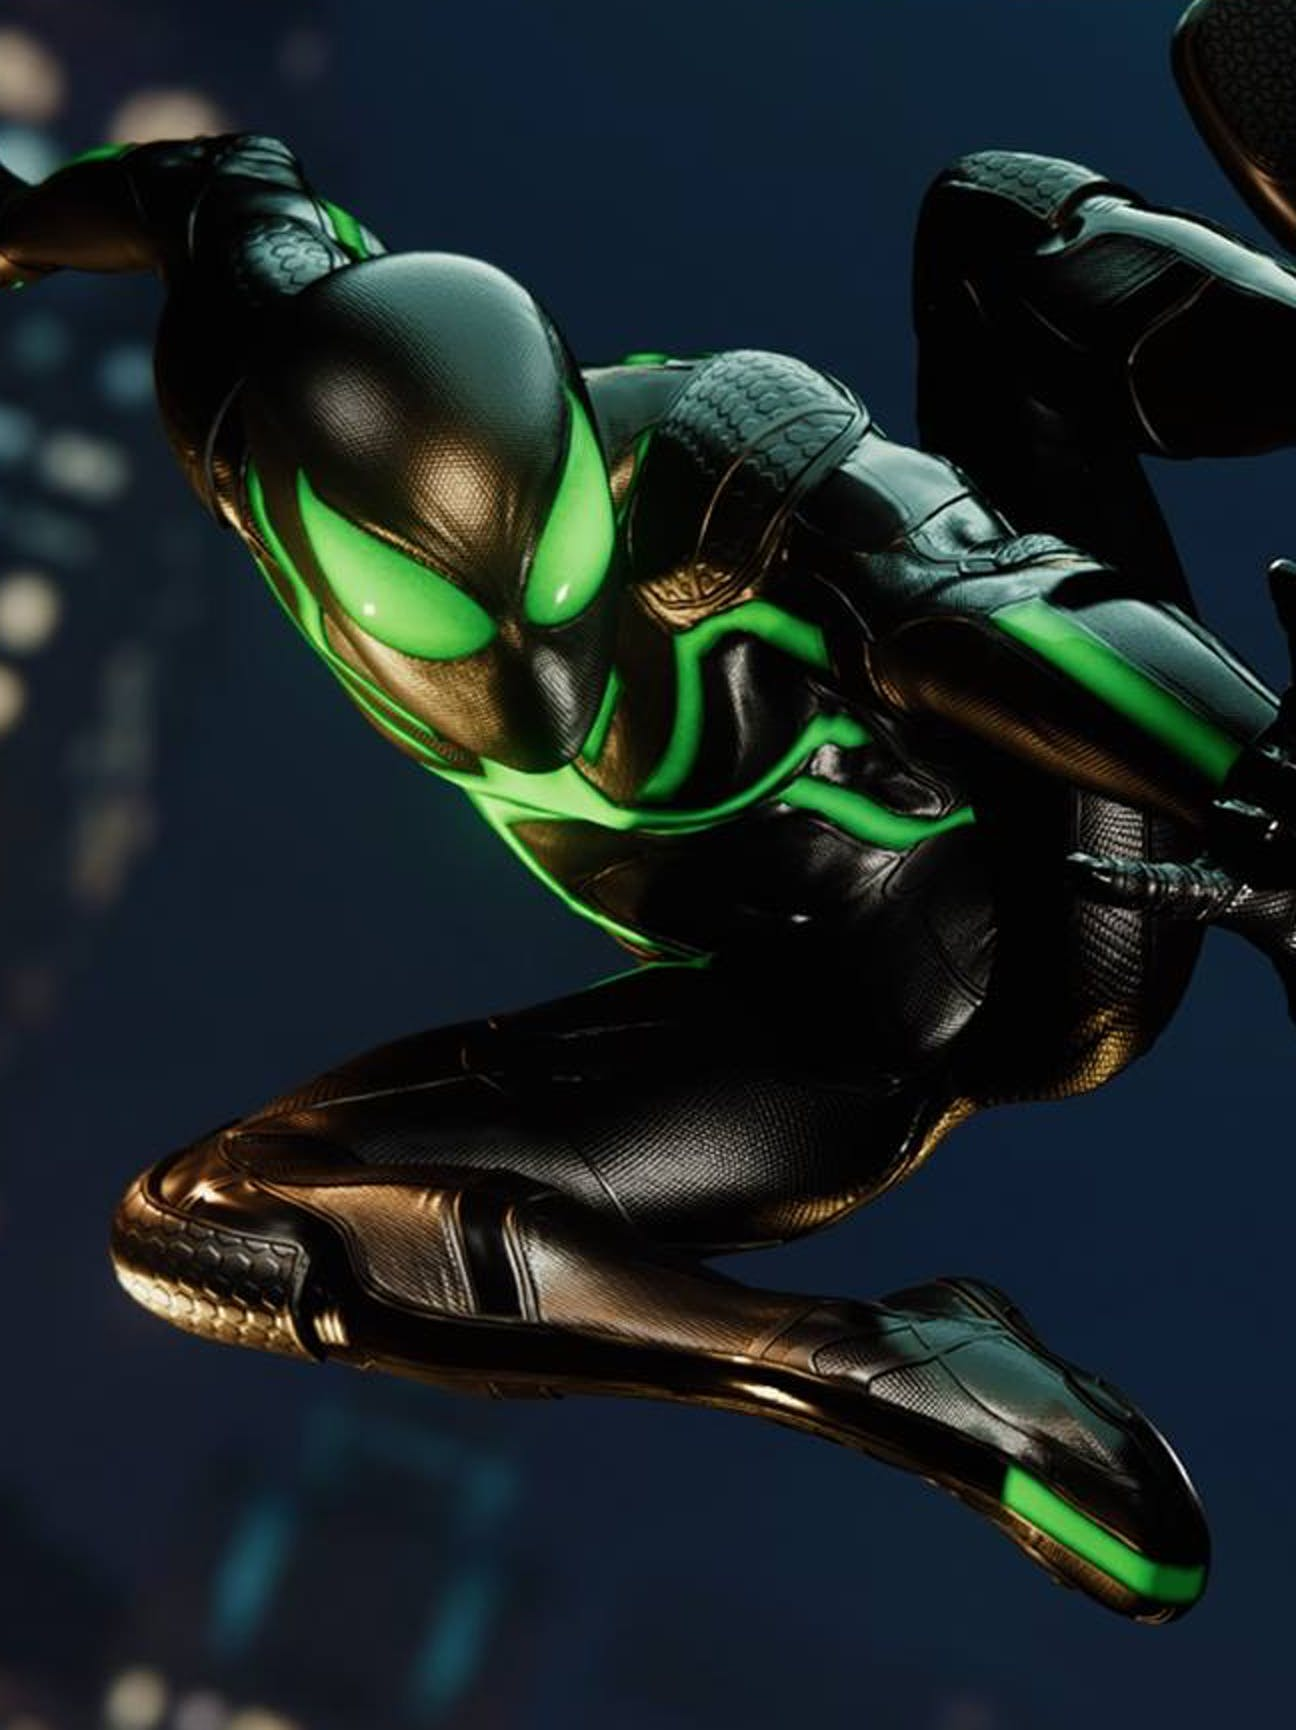 Spider-Man PS4 Stealth Suit